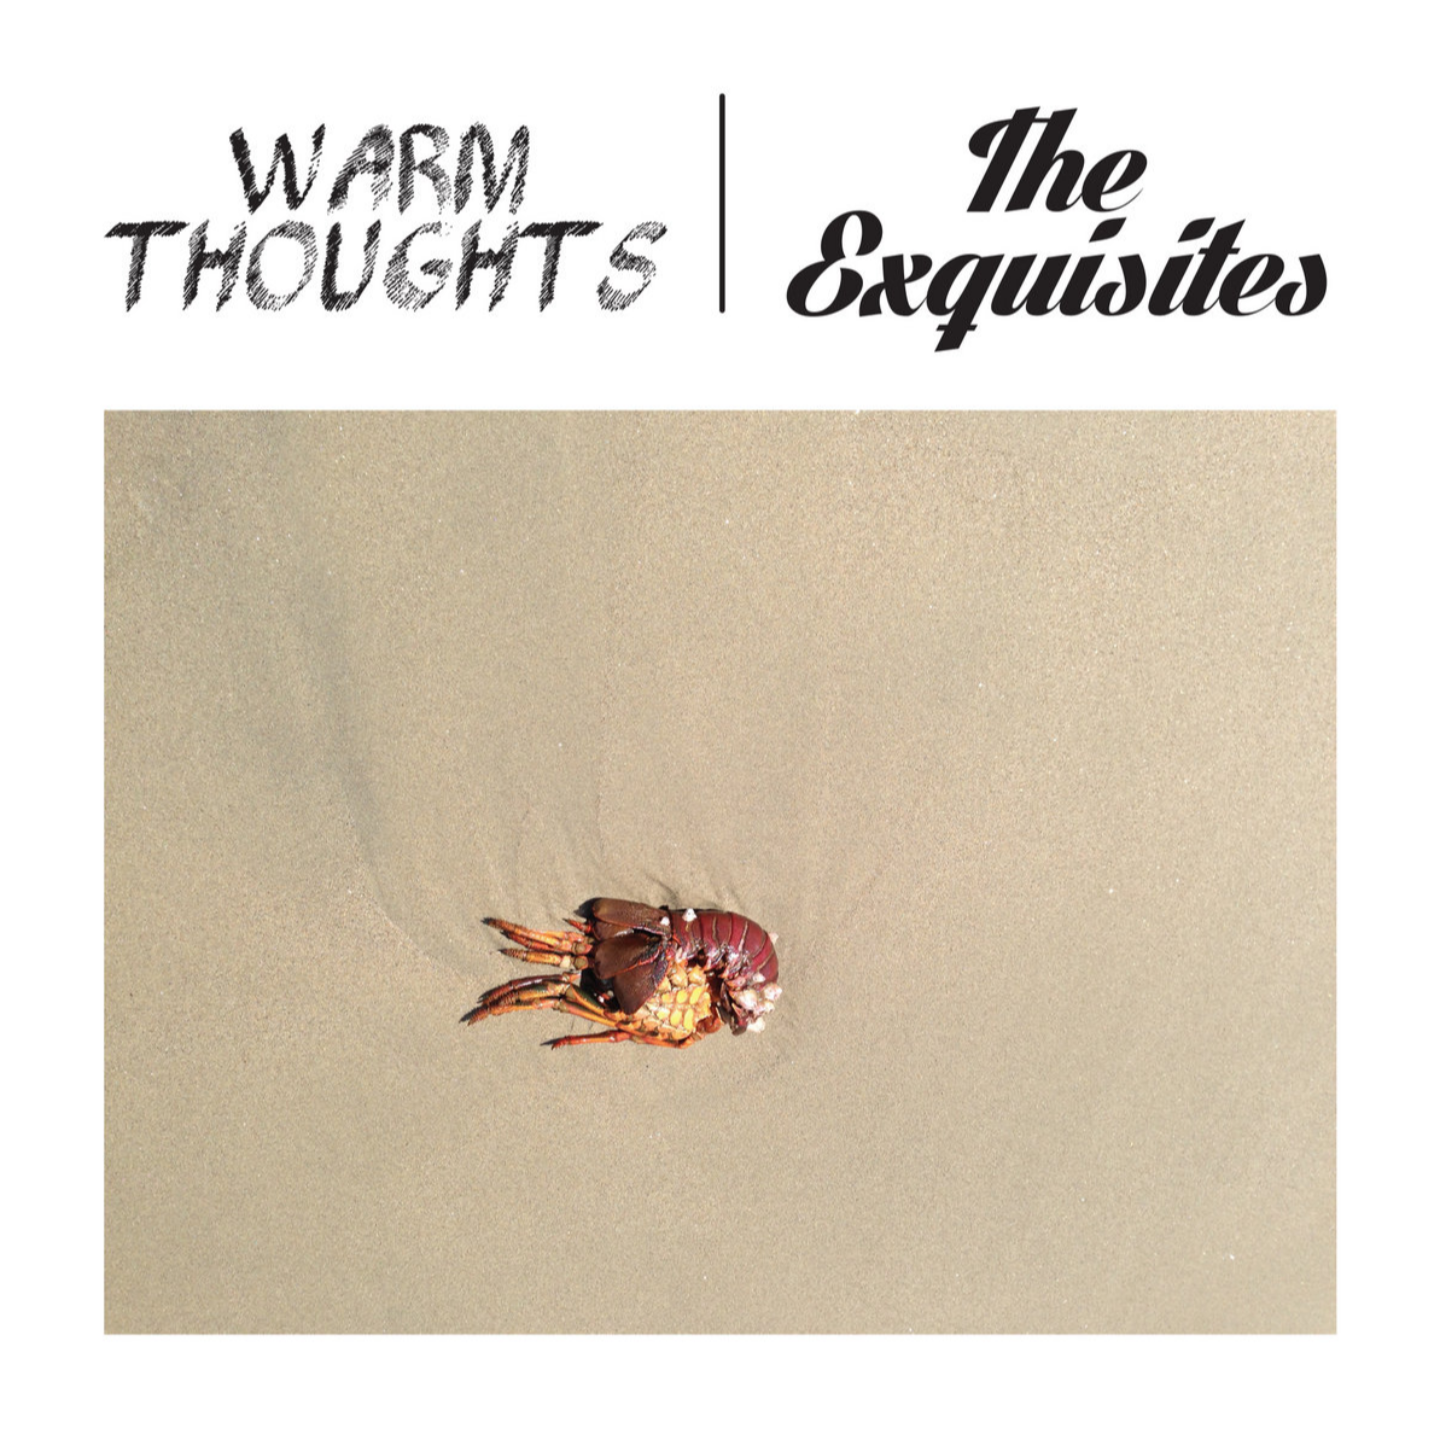 WARM THOUGHTS  EXQUISITES, THE - Split 7